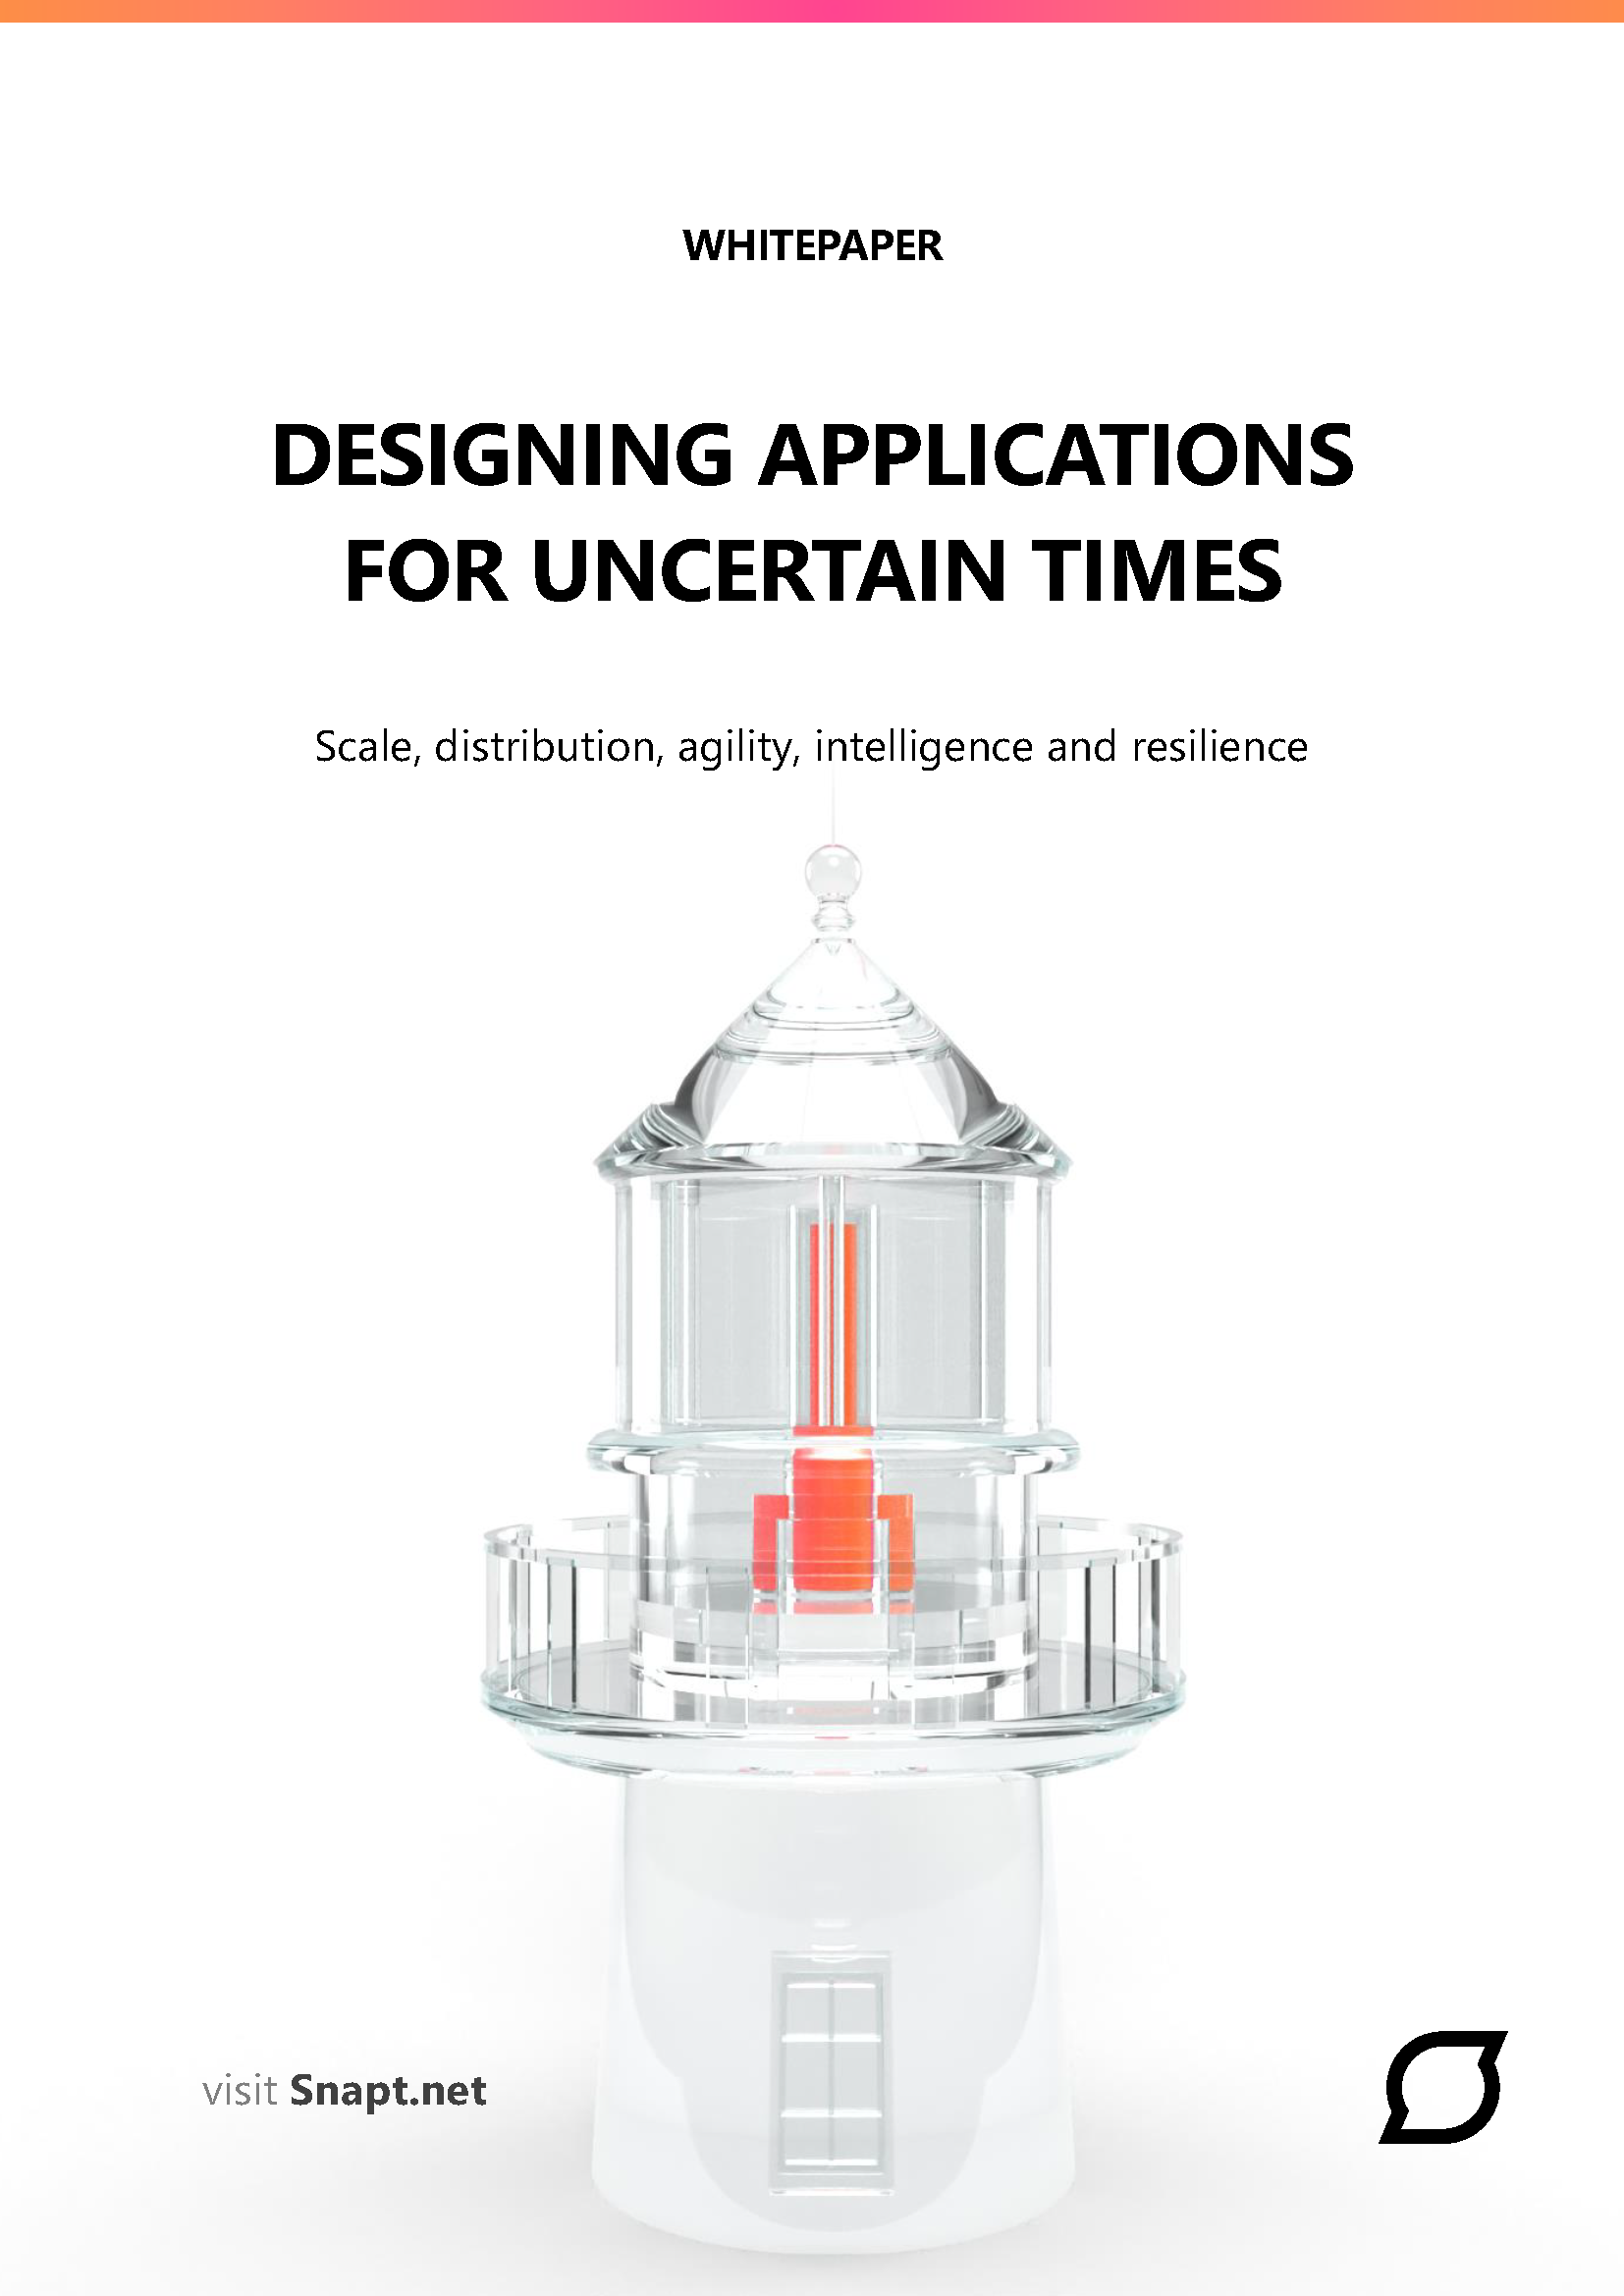 Whitepaper - Designing Applications for Uncertainty